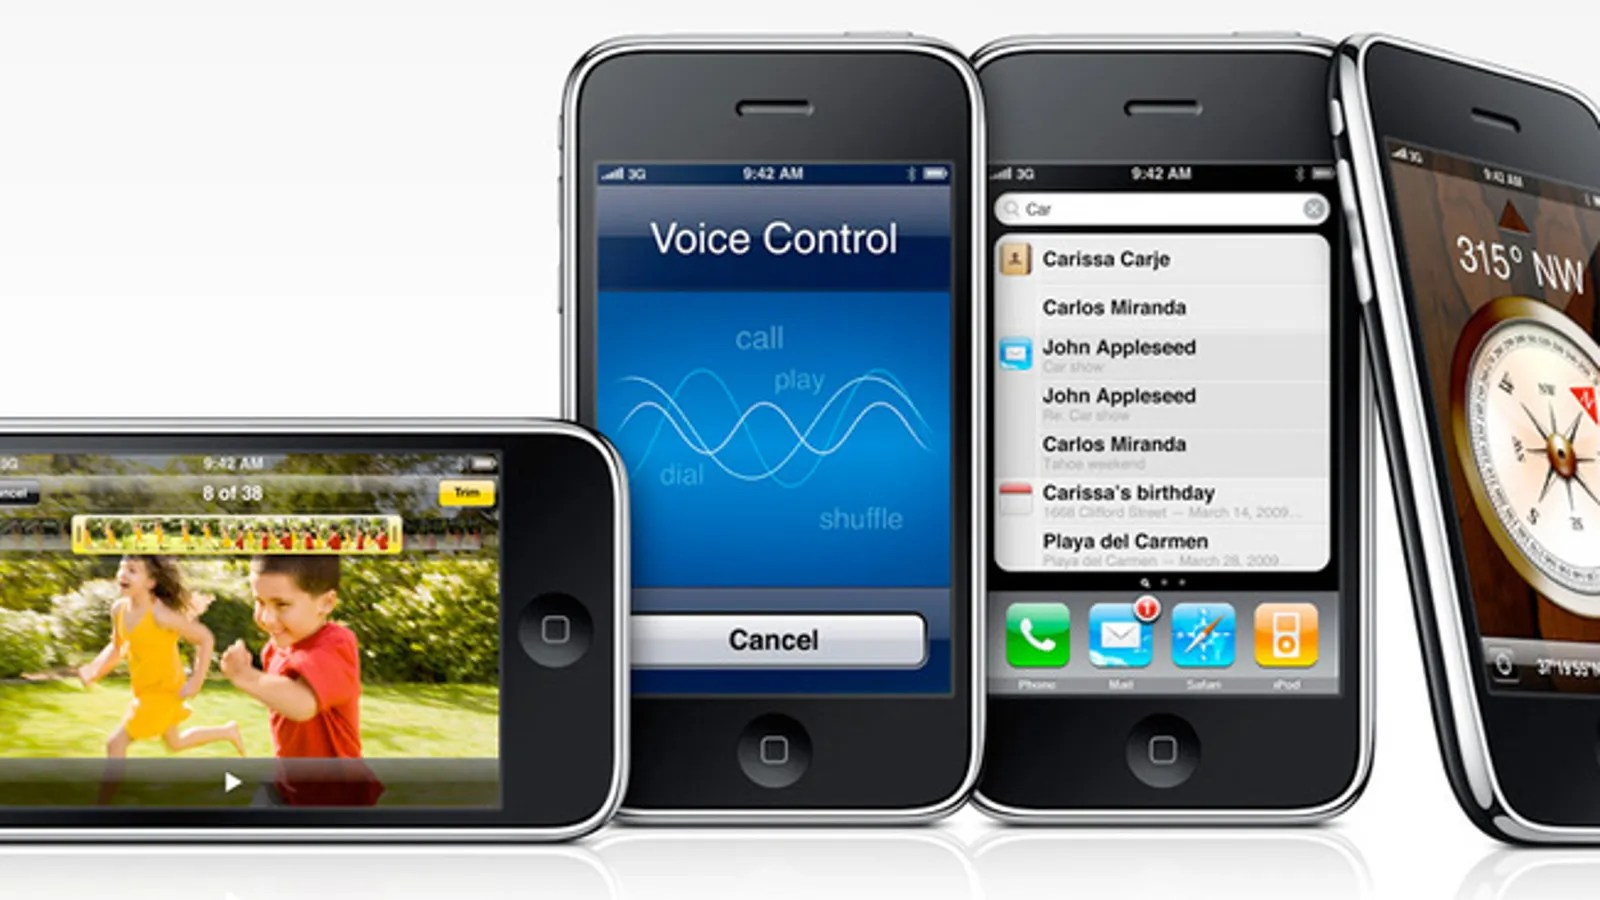 Iphone 3gs Iphone 3gs Complete Feature Guide